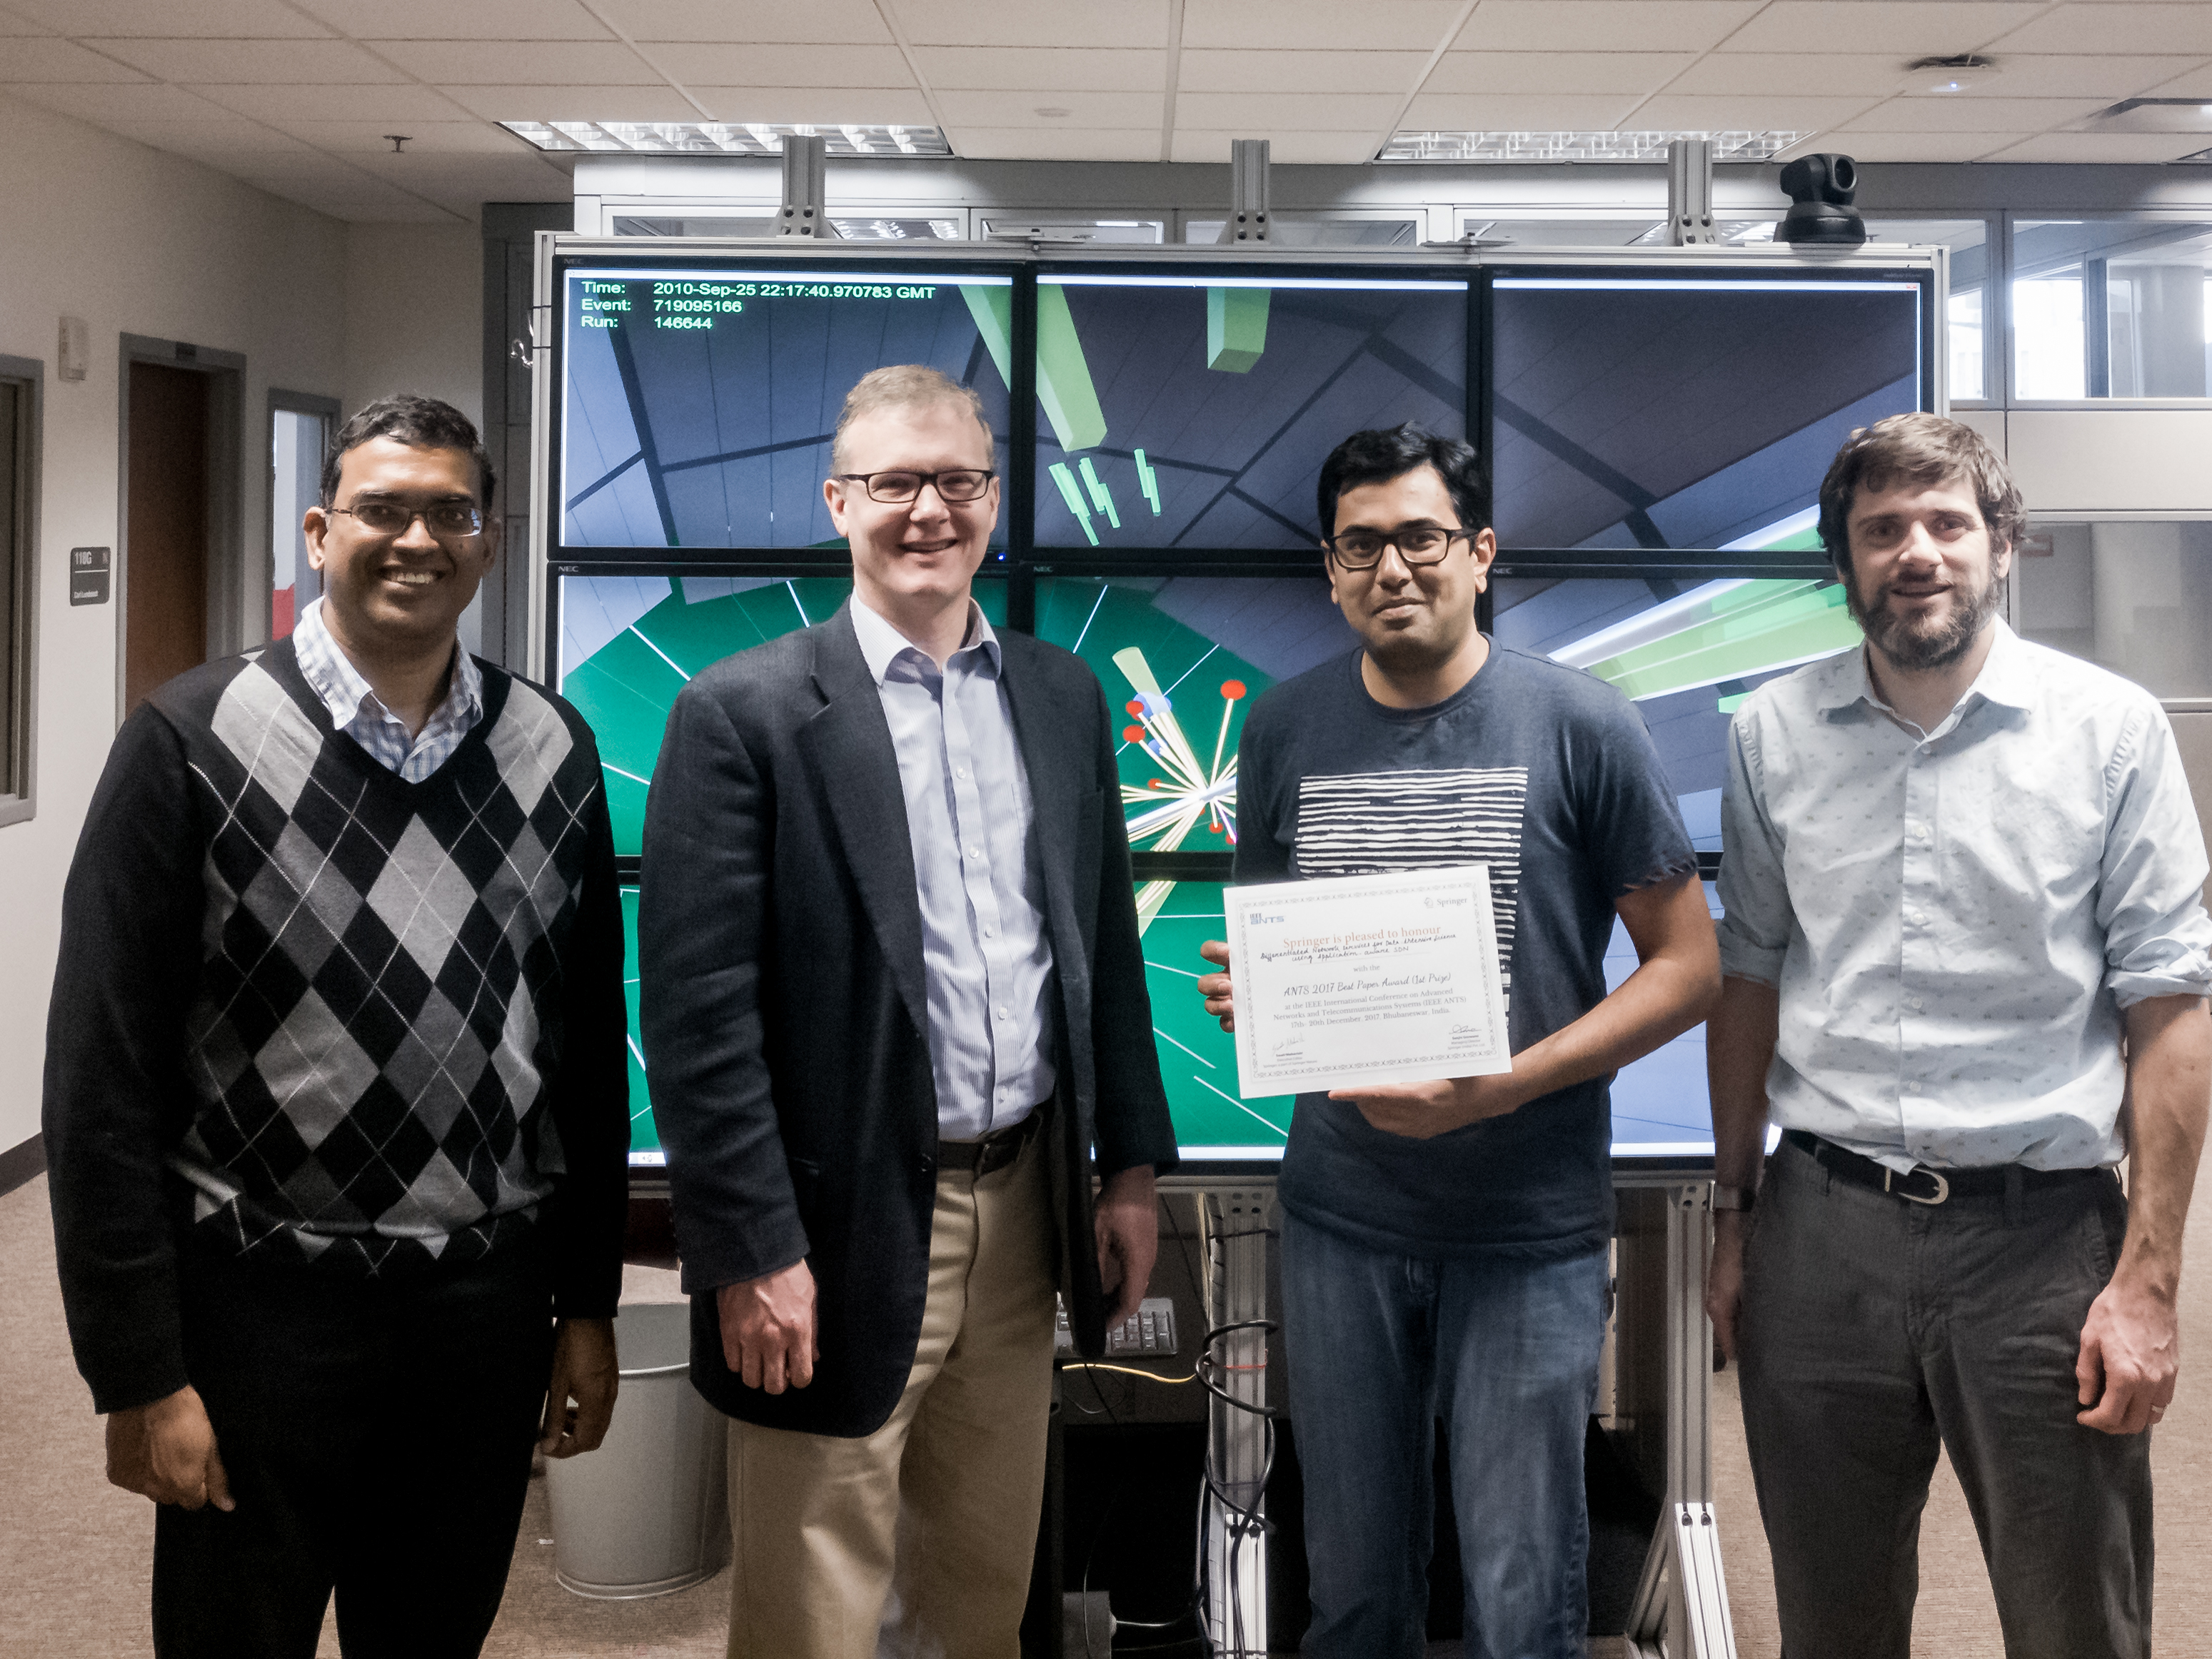 From left to right: Byrav Ramamurthy, David Swanson, Deepak Nadig Anantha, and Brian Bockelman.